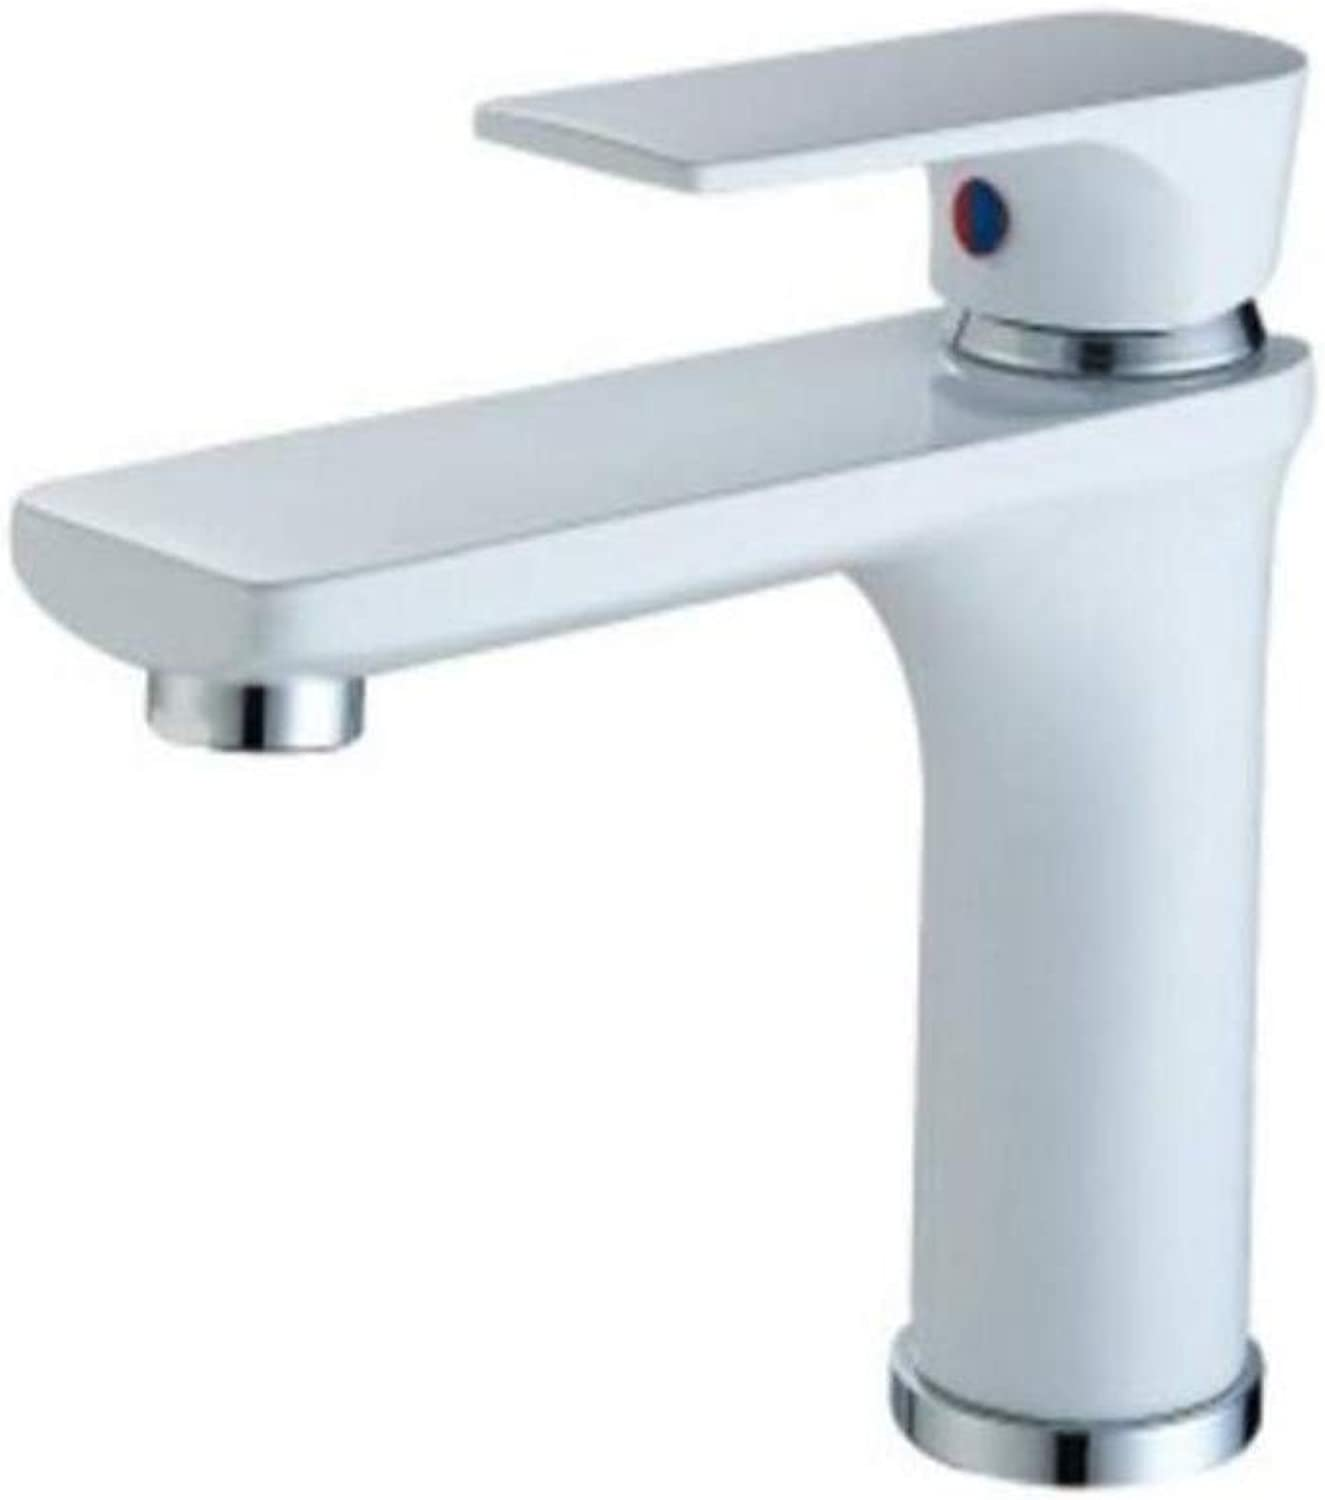 Tap Hot and Cold Water Faucet Bathroom Mixer Tap